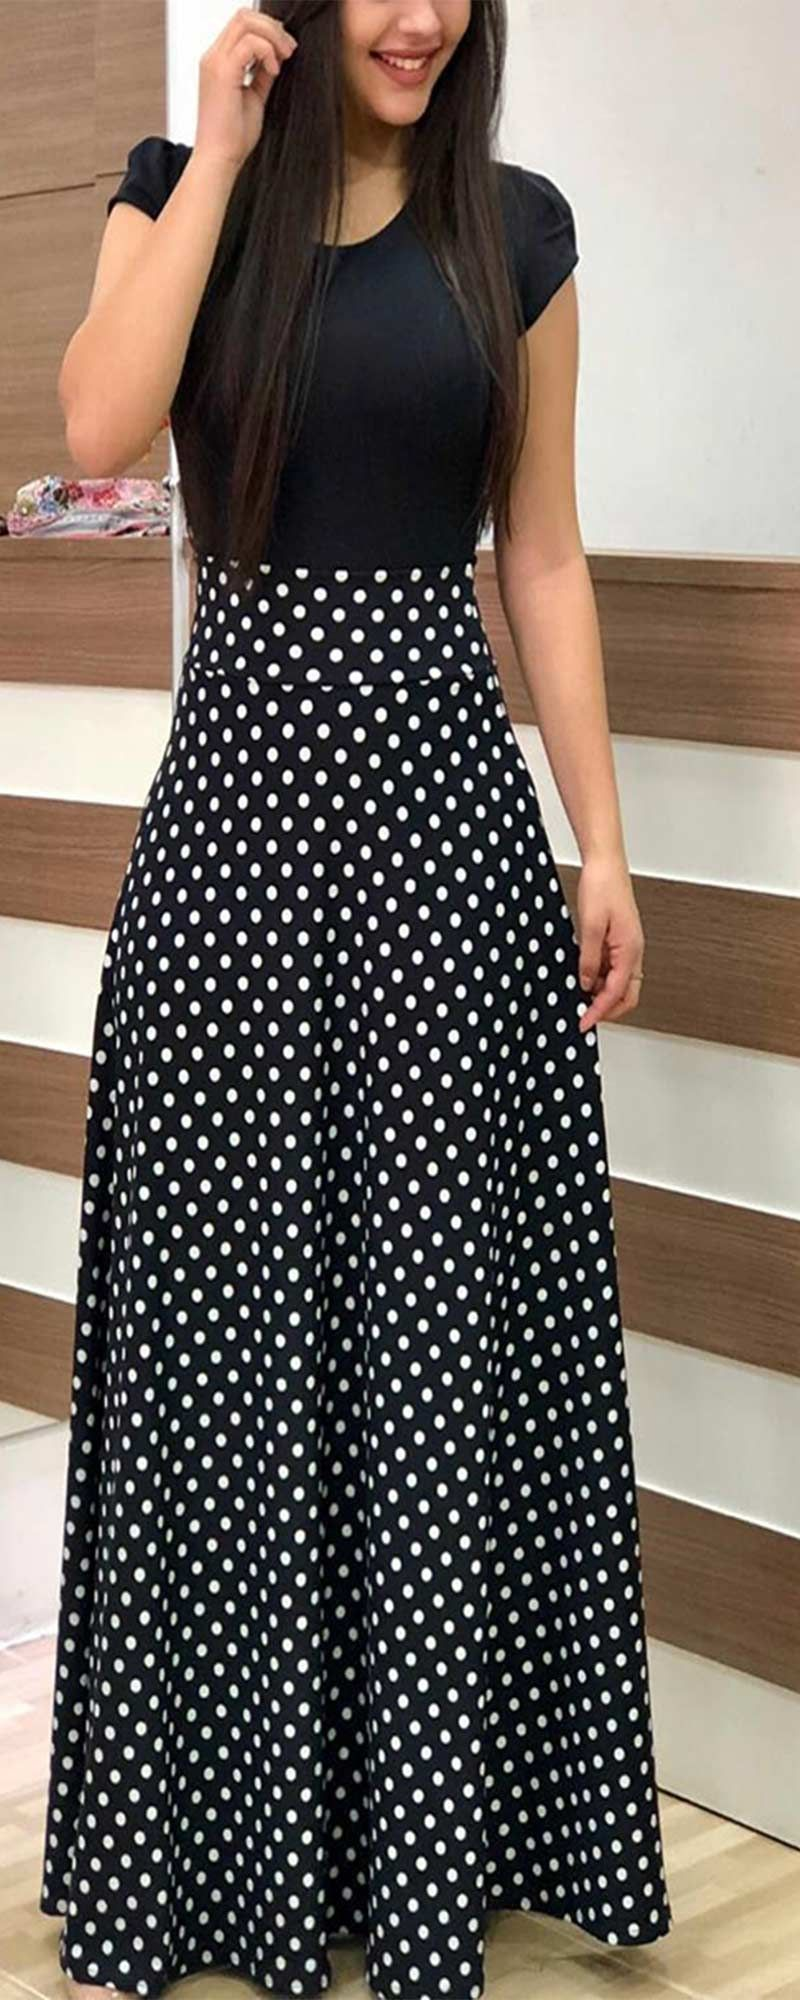 d91fa236a52a Long maxi dress with black short sleeves and white polka dots design. Such  a cute and safe outfit!